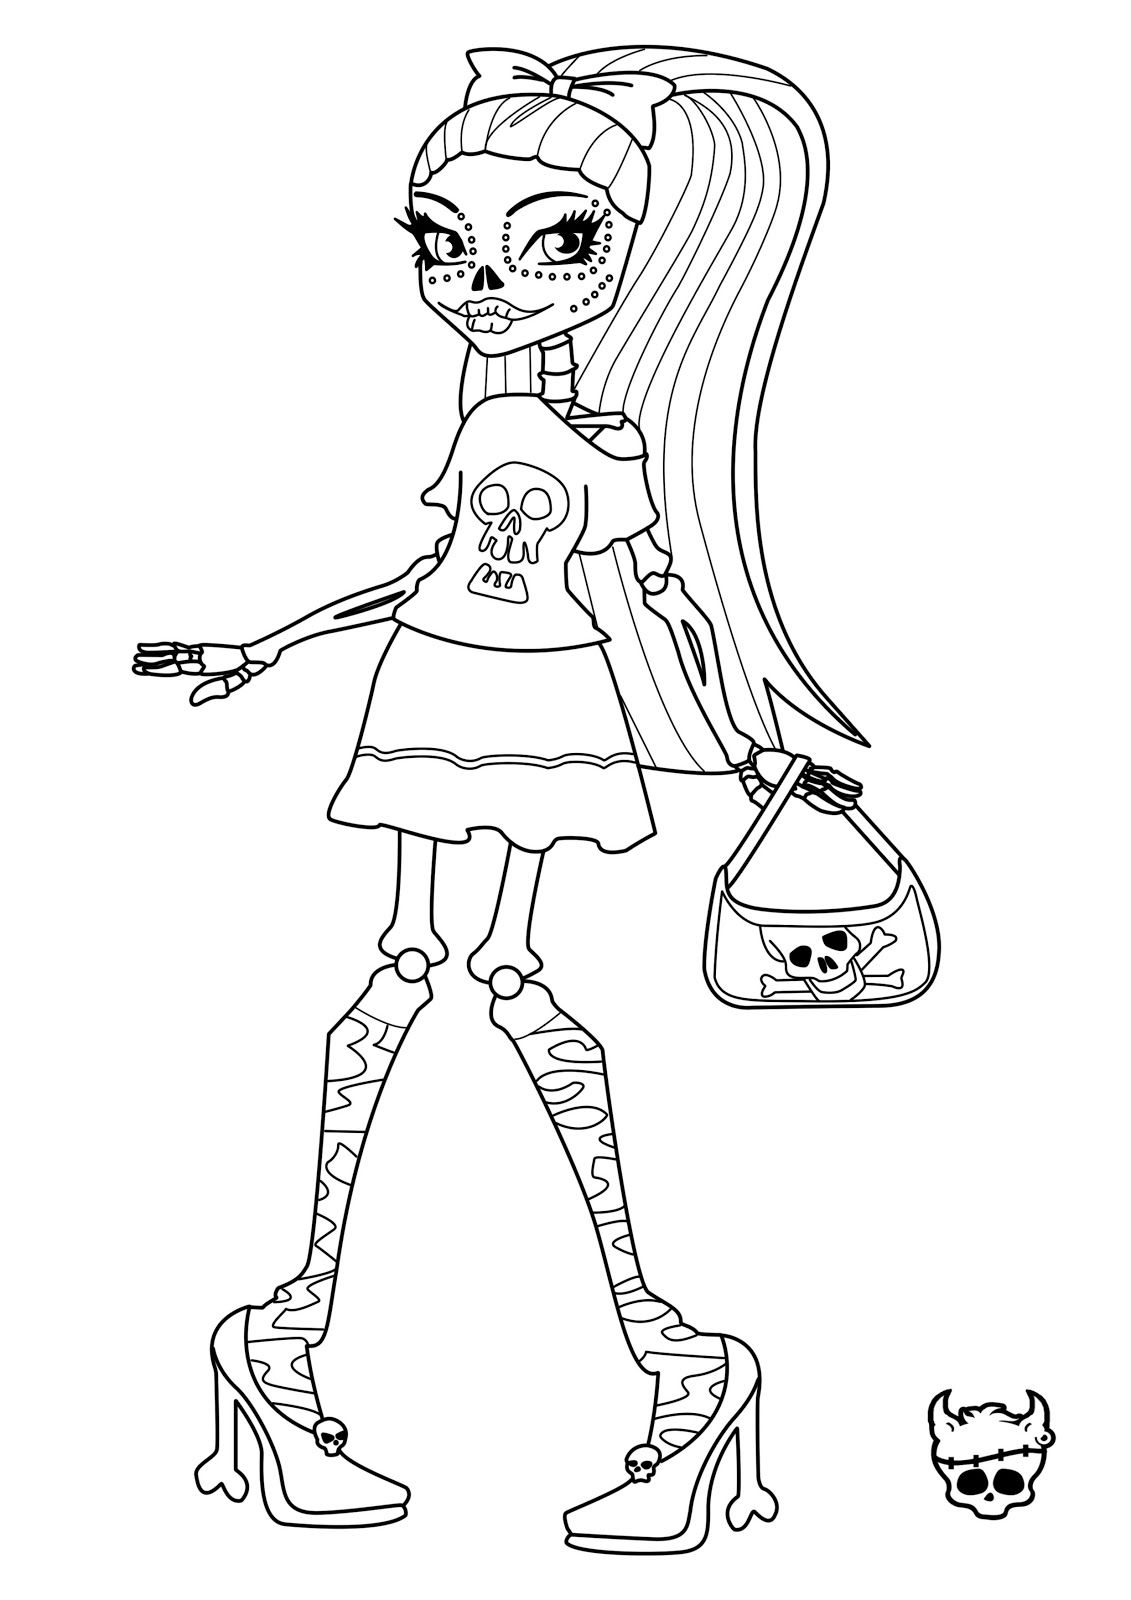 frankie stein and clawdeen wolf monster high coloring page for